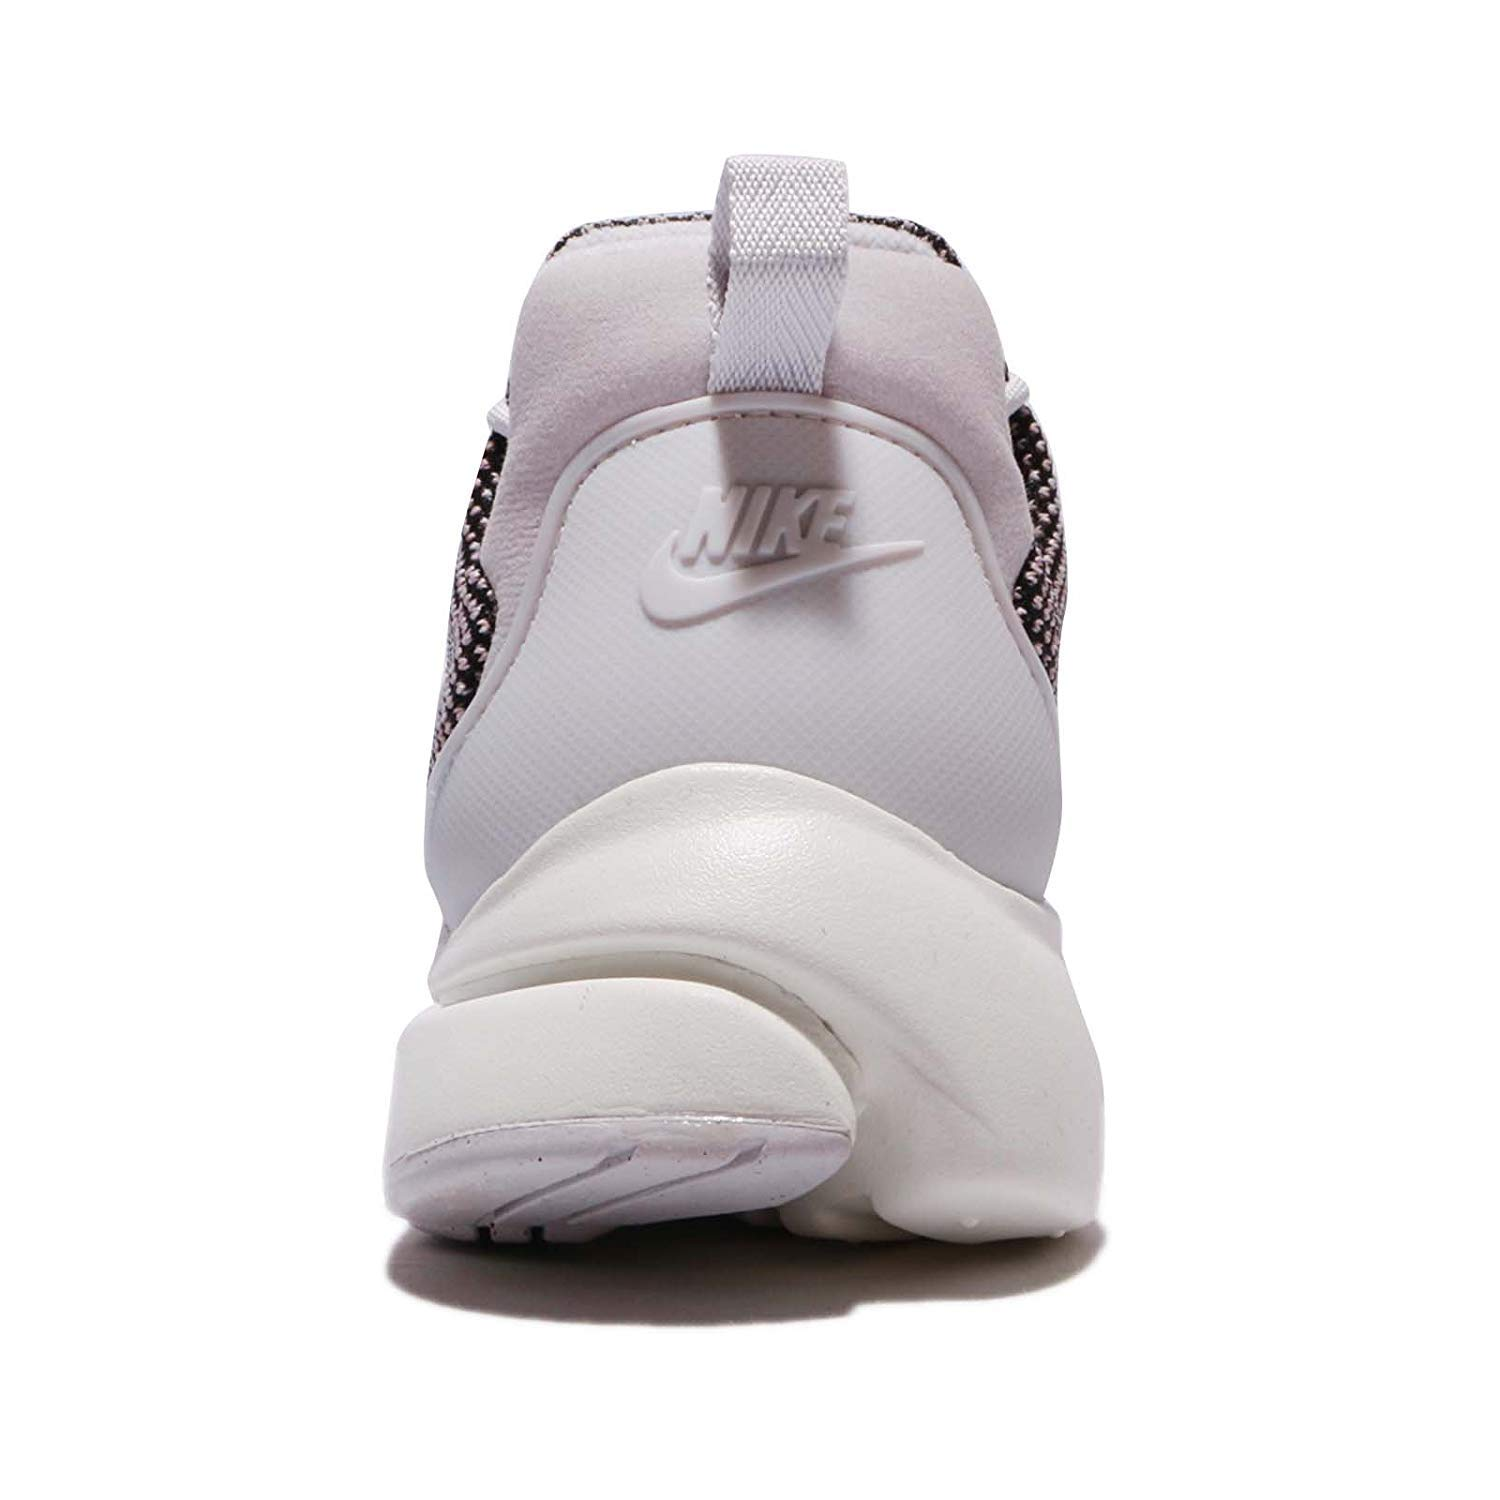 reputable site a26ba 03a25 NIKE 910570-005 Women WMNS Presto Fly Vast Grey Particle  NIKE   Amazon.co.uk  Shoes   Bags